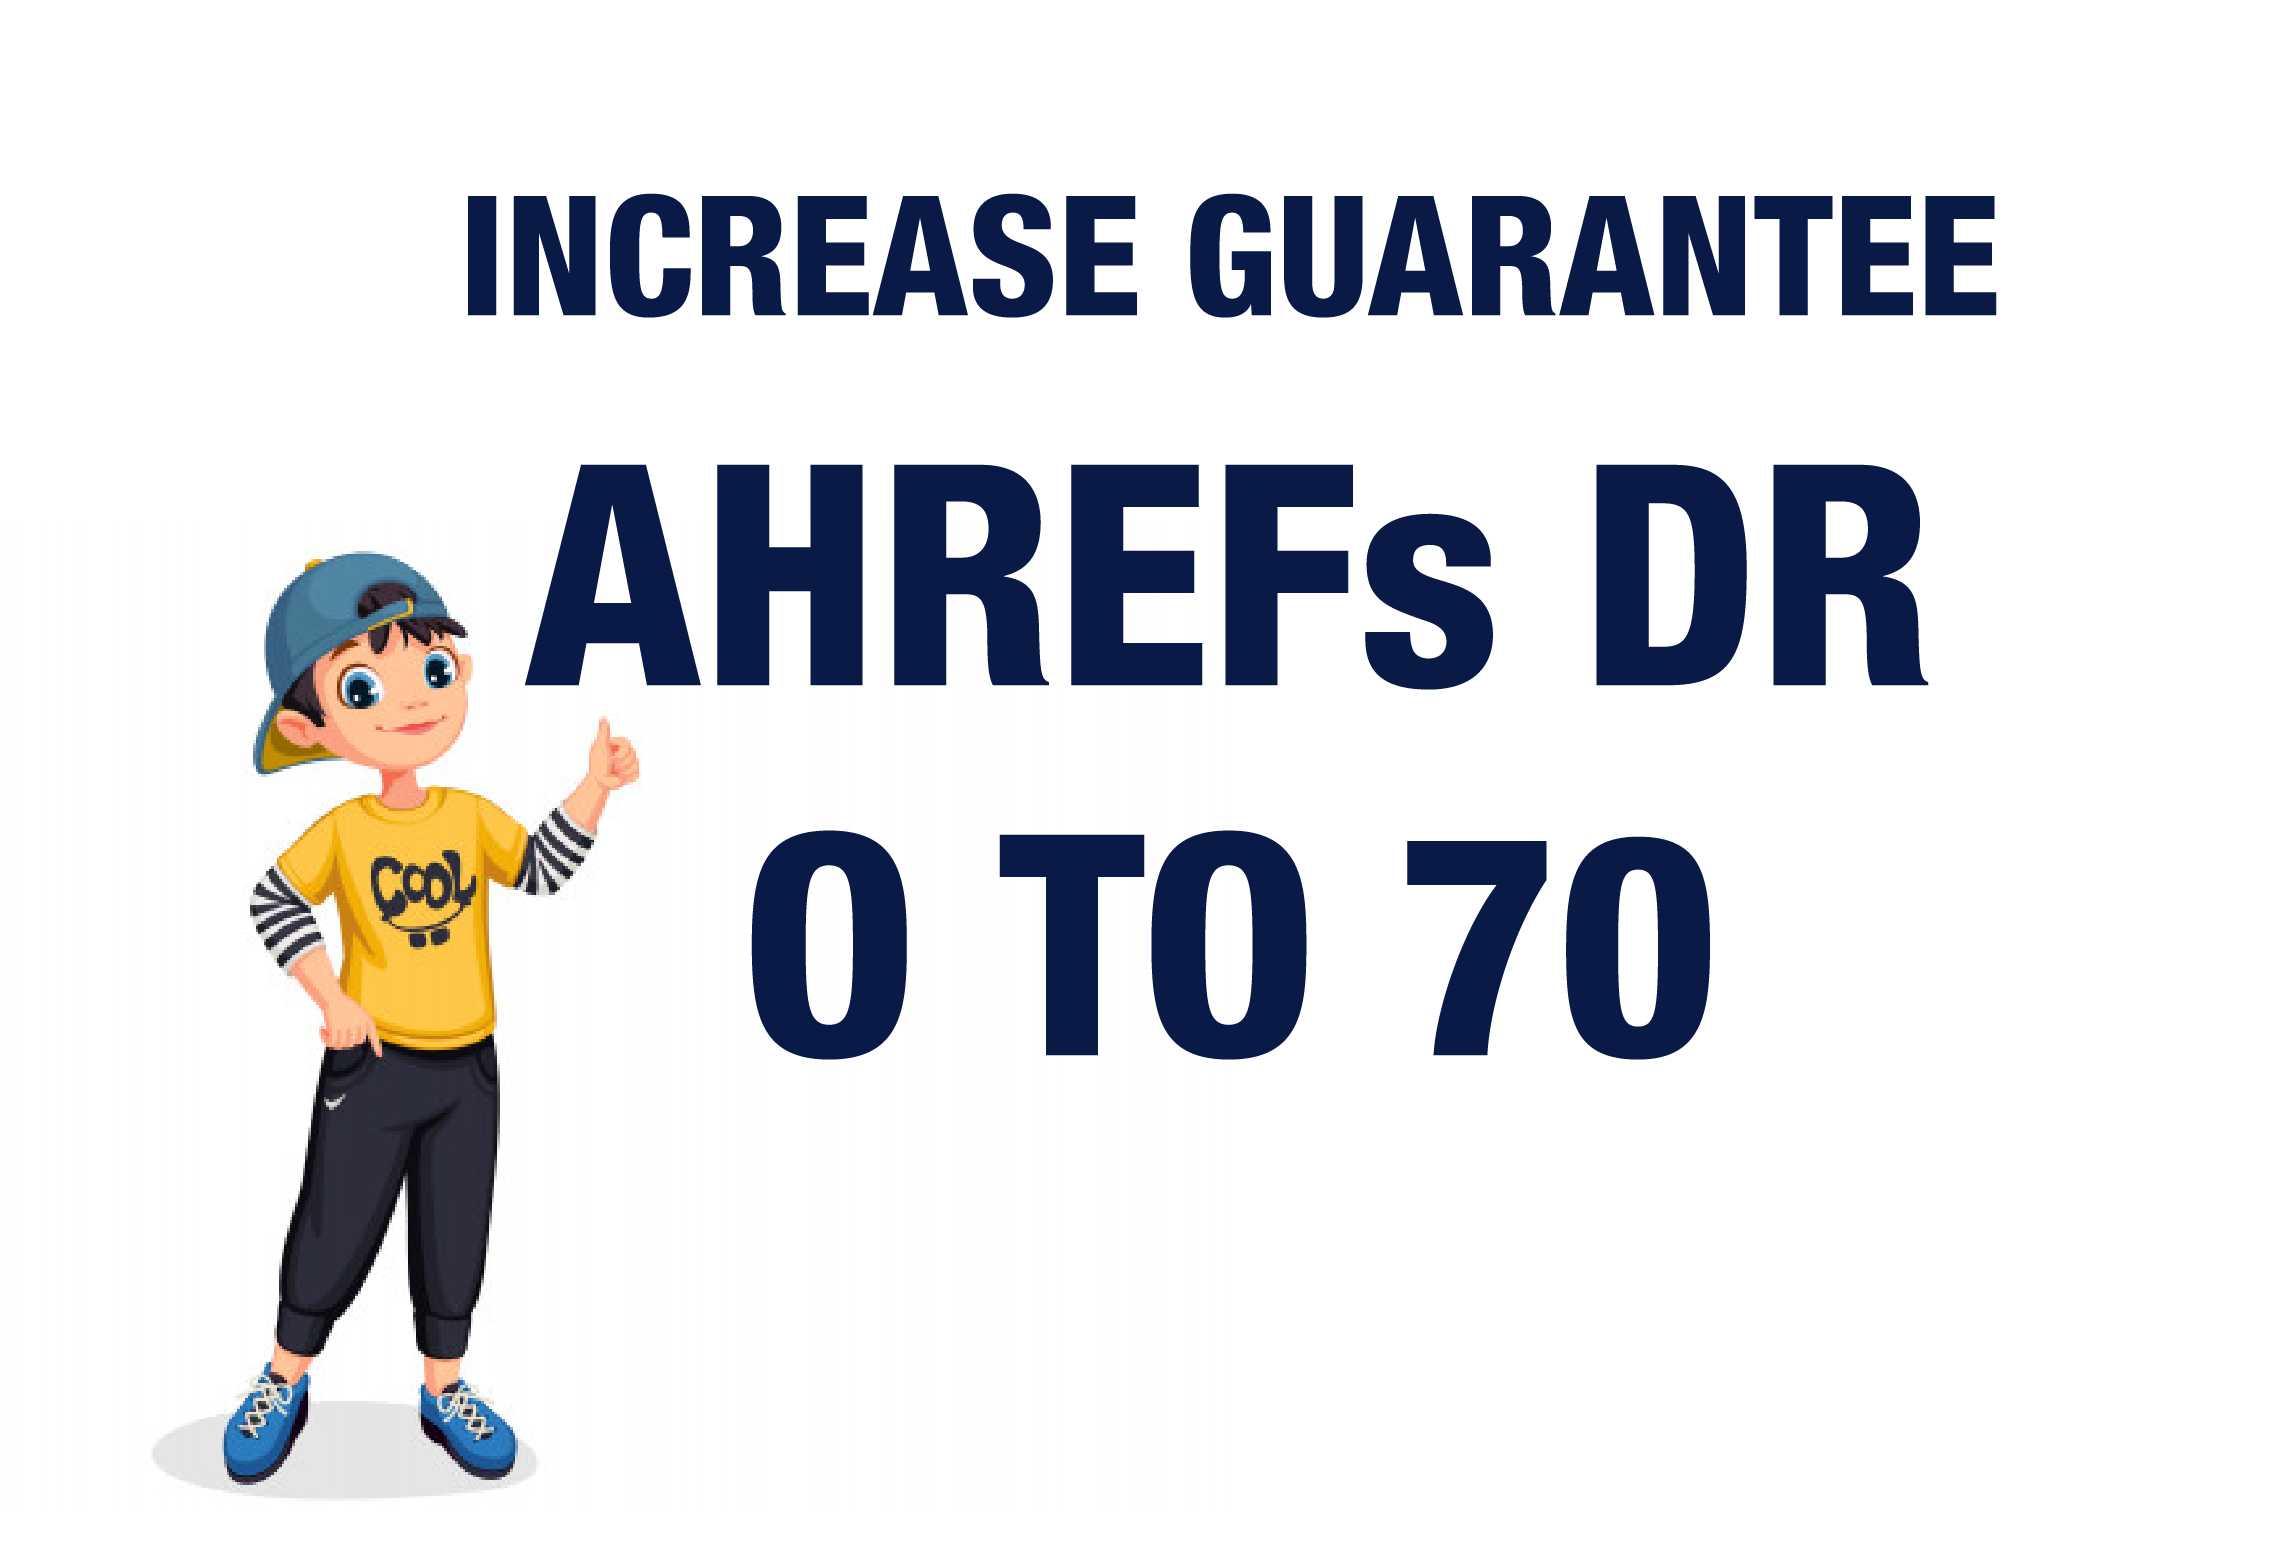 I will increase Aherfs DR 70 Increase Guarantee